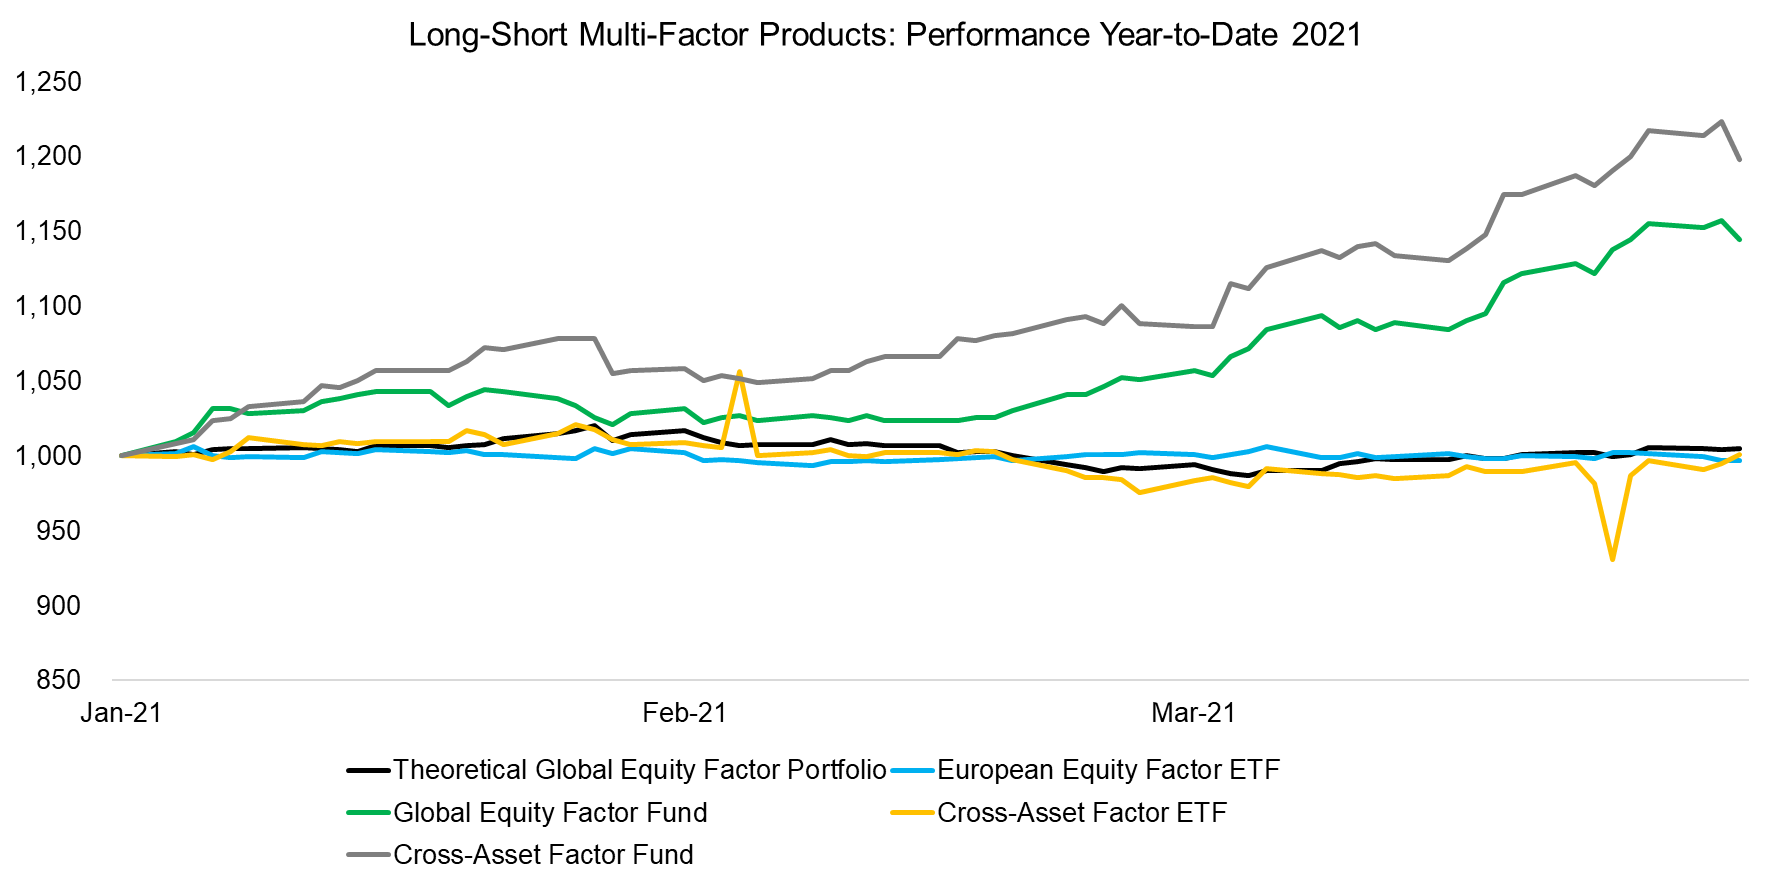 Long-Short Multi-Factor Products Performance Year-to-Date 2021